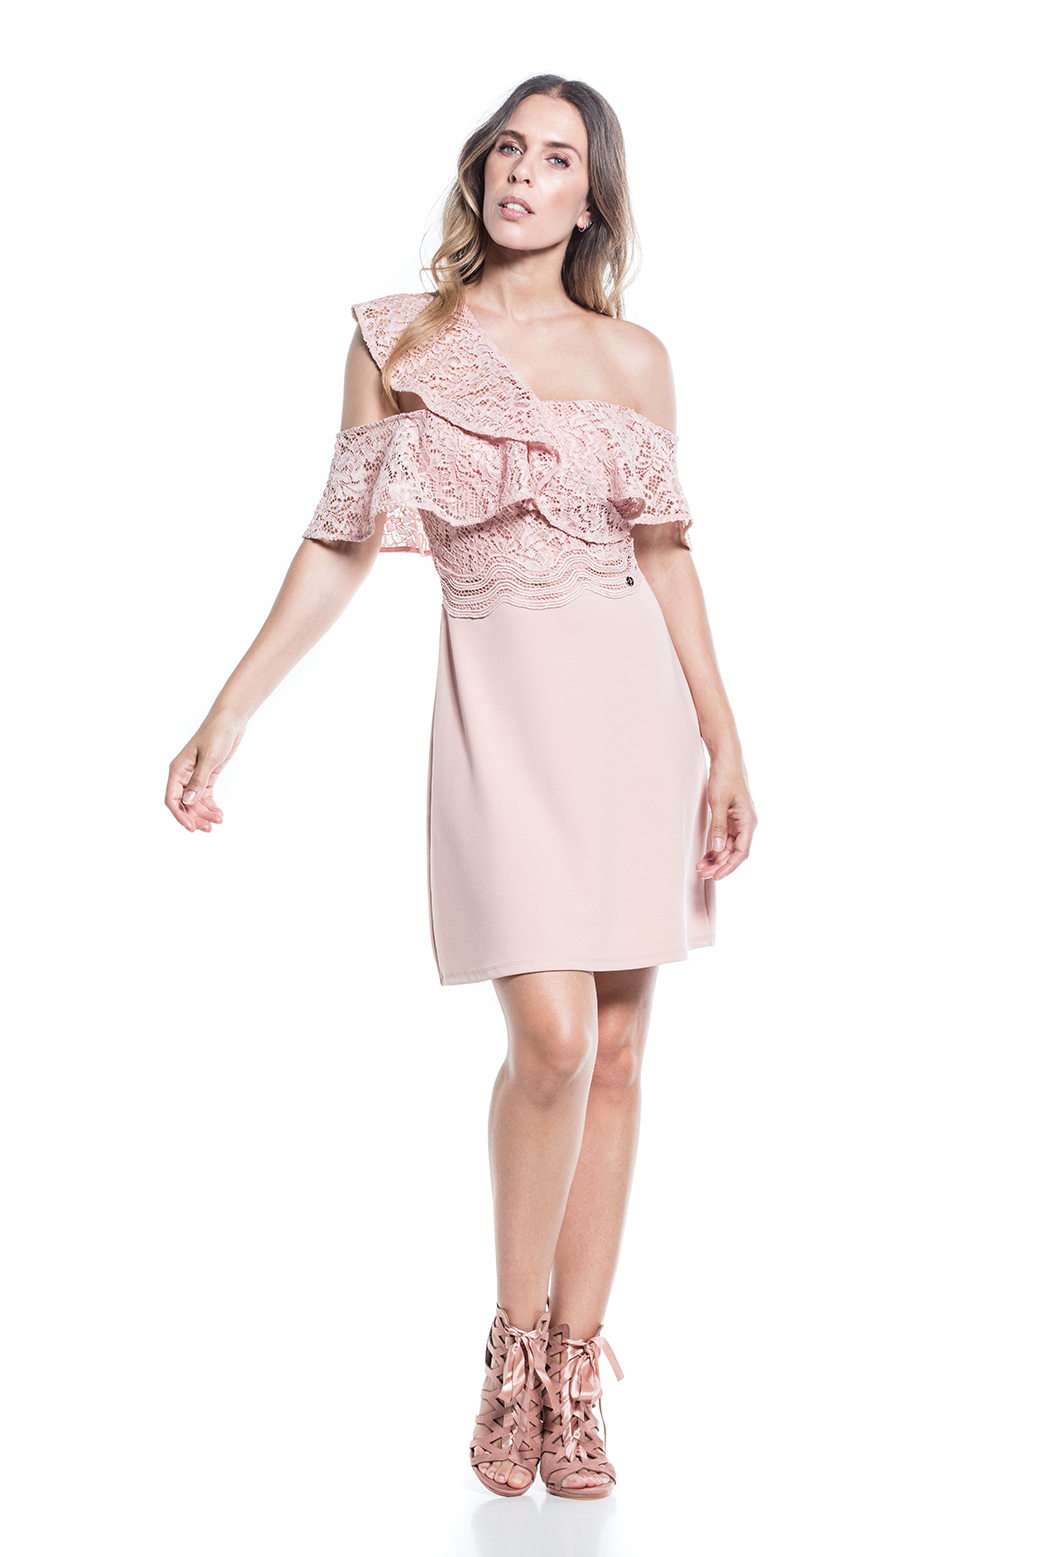 Structured dress with lace sleeves